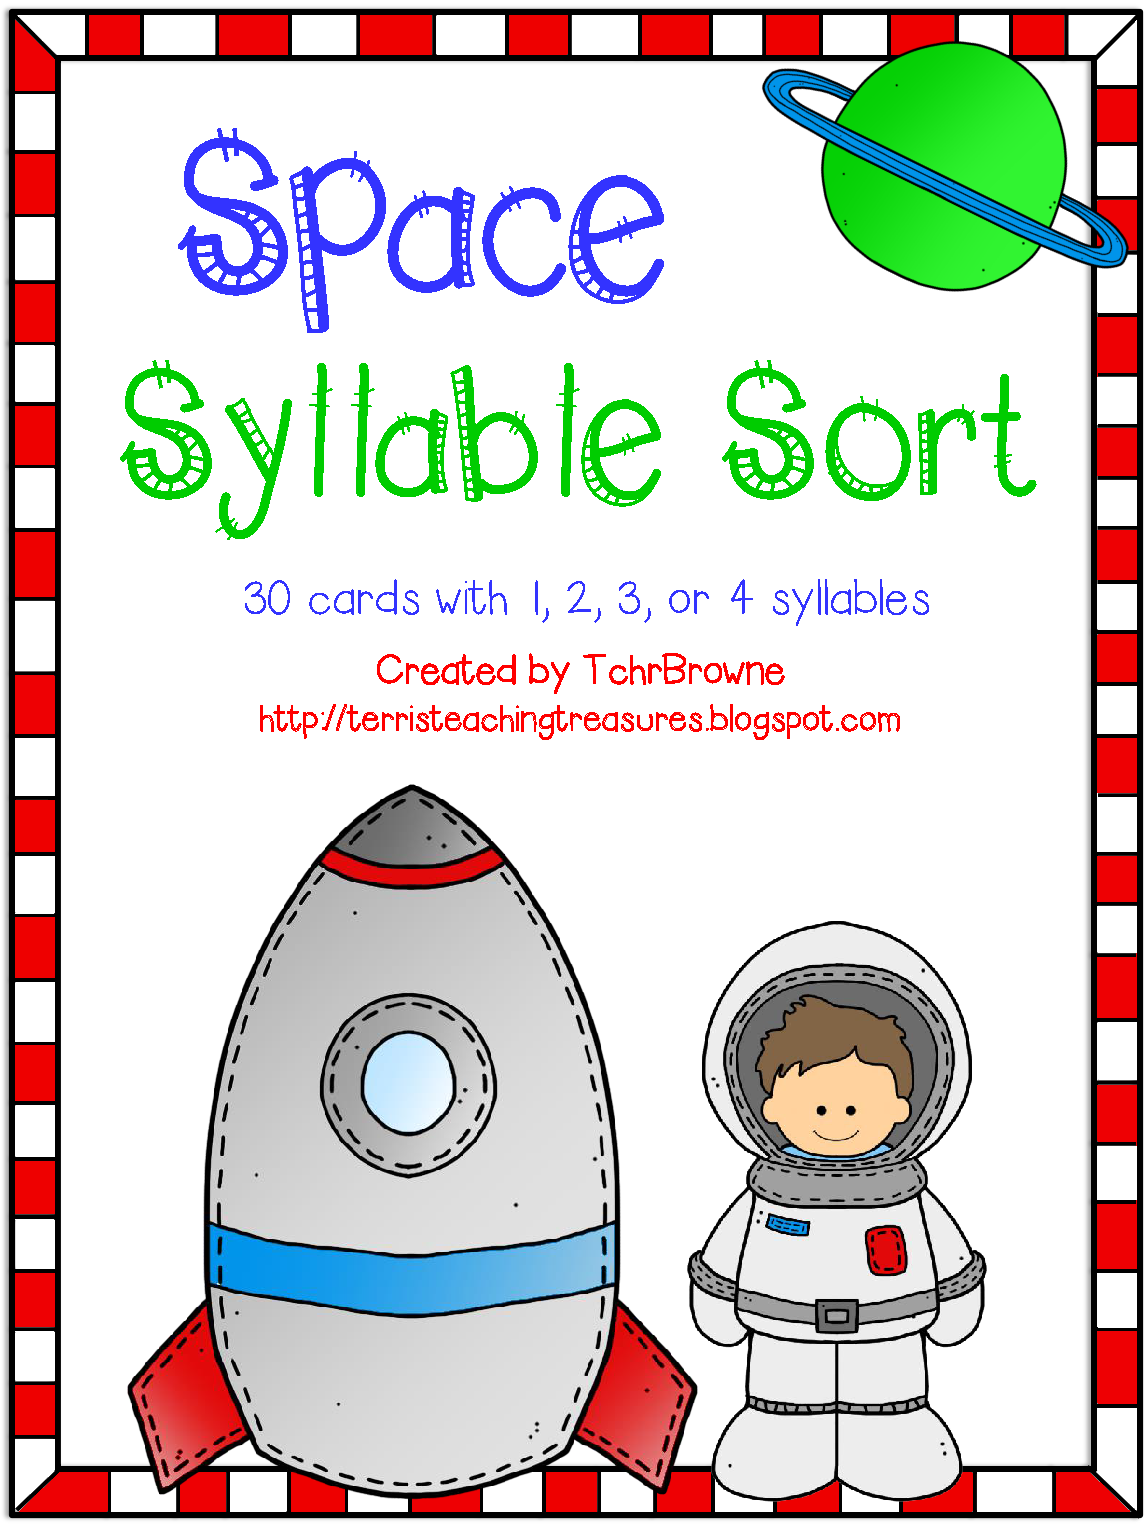 http://www.teacherspayteachers.com/Store/Tchrbrowne/Search:syllable+sort%27/Search:syllable%20sort